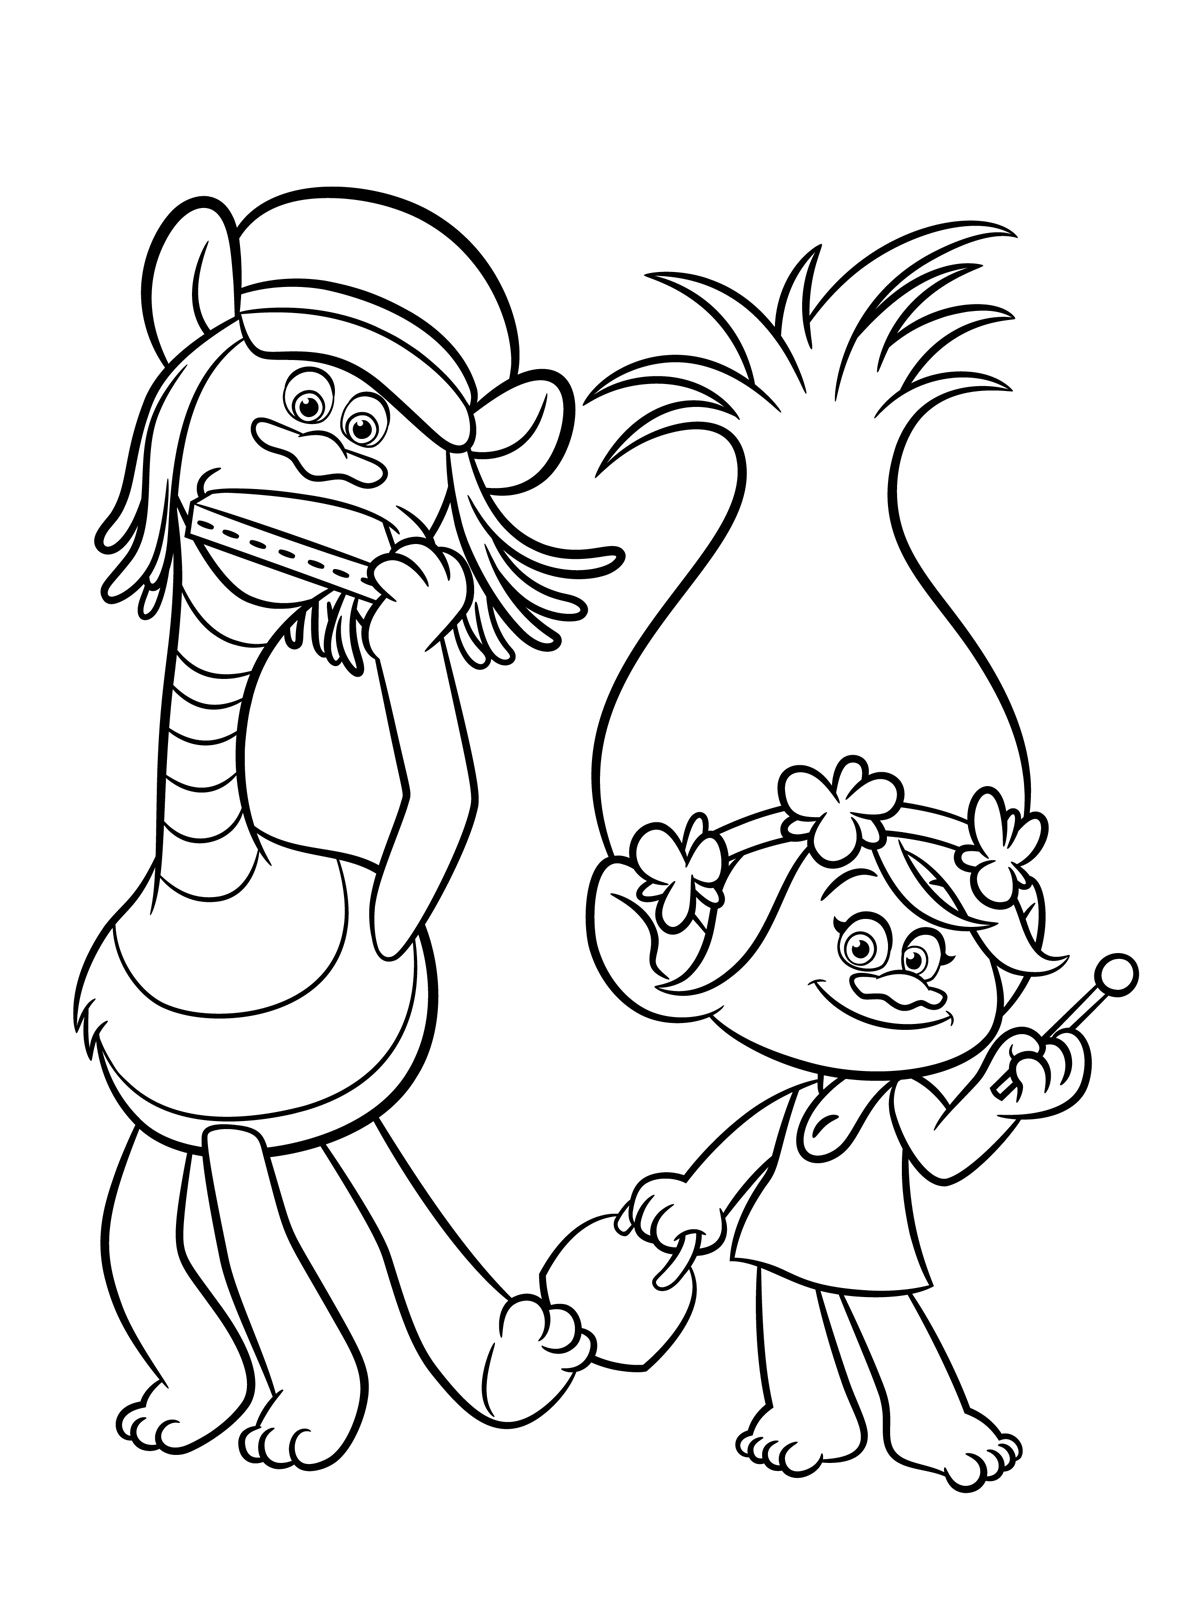 pictures of kids coloring princess coloring pages best coloring pages for kids pictures kids coloring of